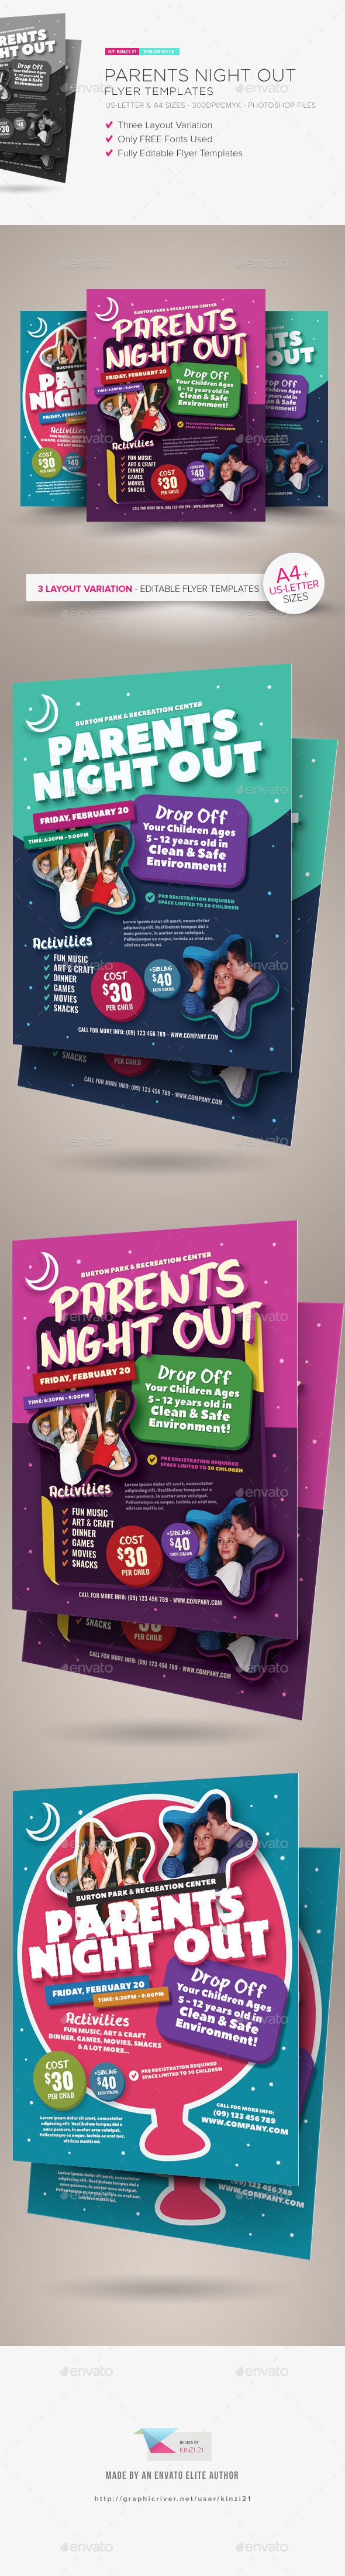 parent flyer templates - parents night out flyer templates by kinzishots graphicriver